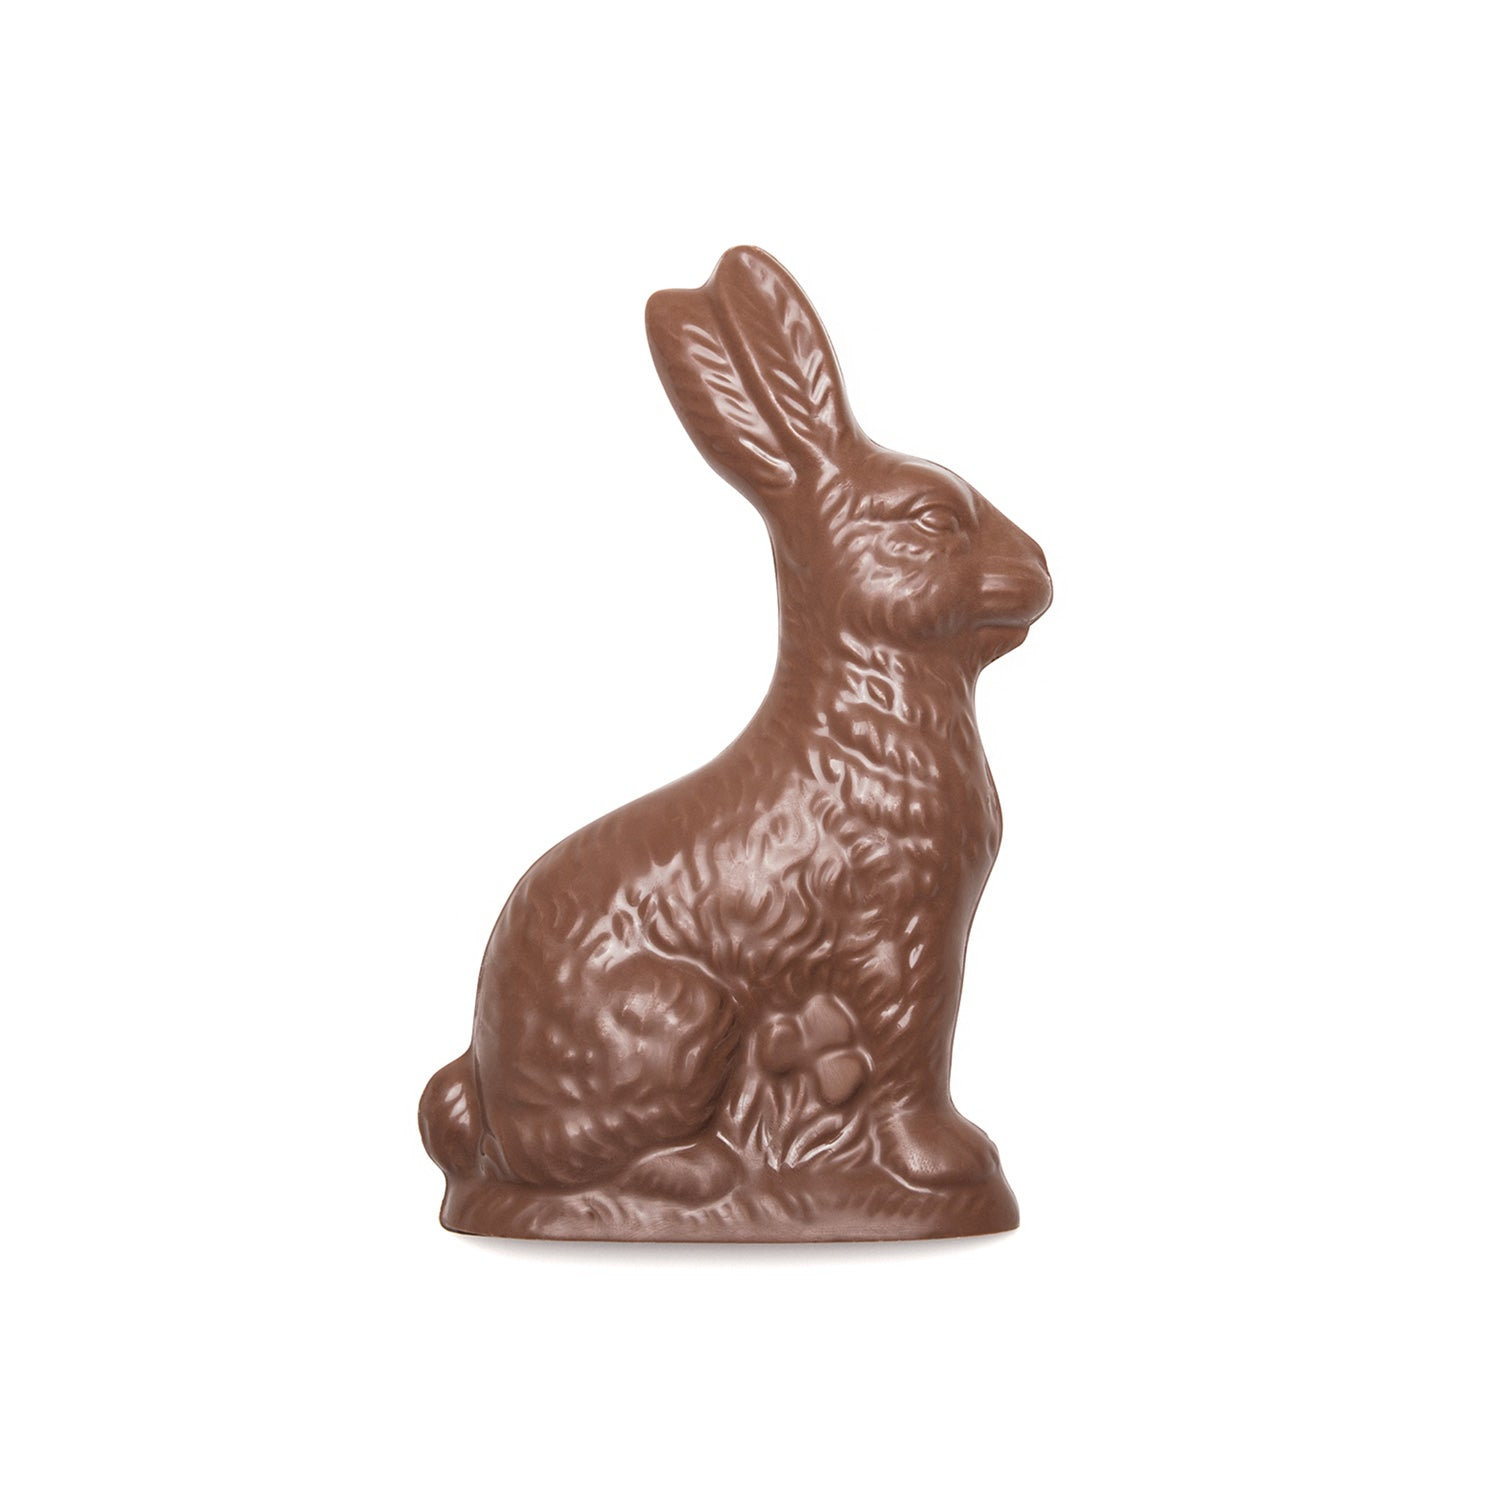 Chocolate molding of a rabbit